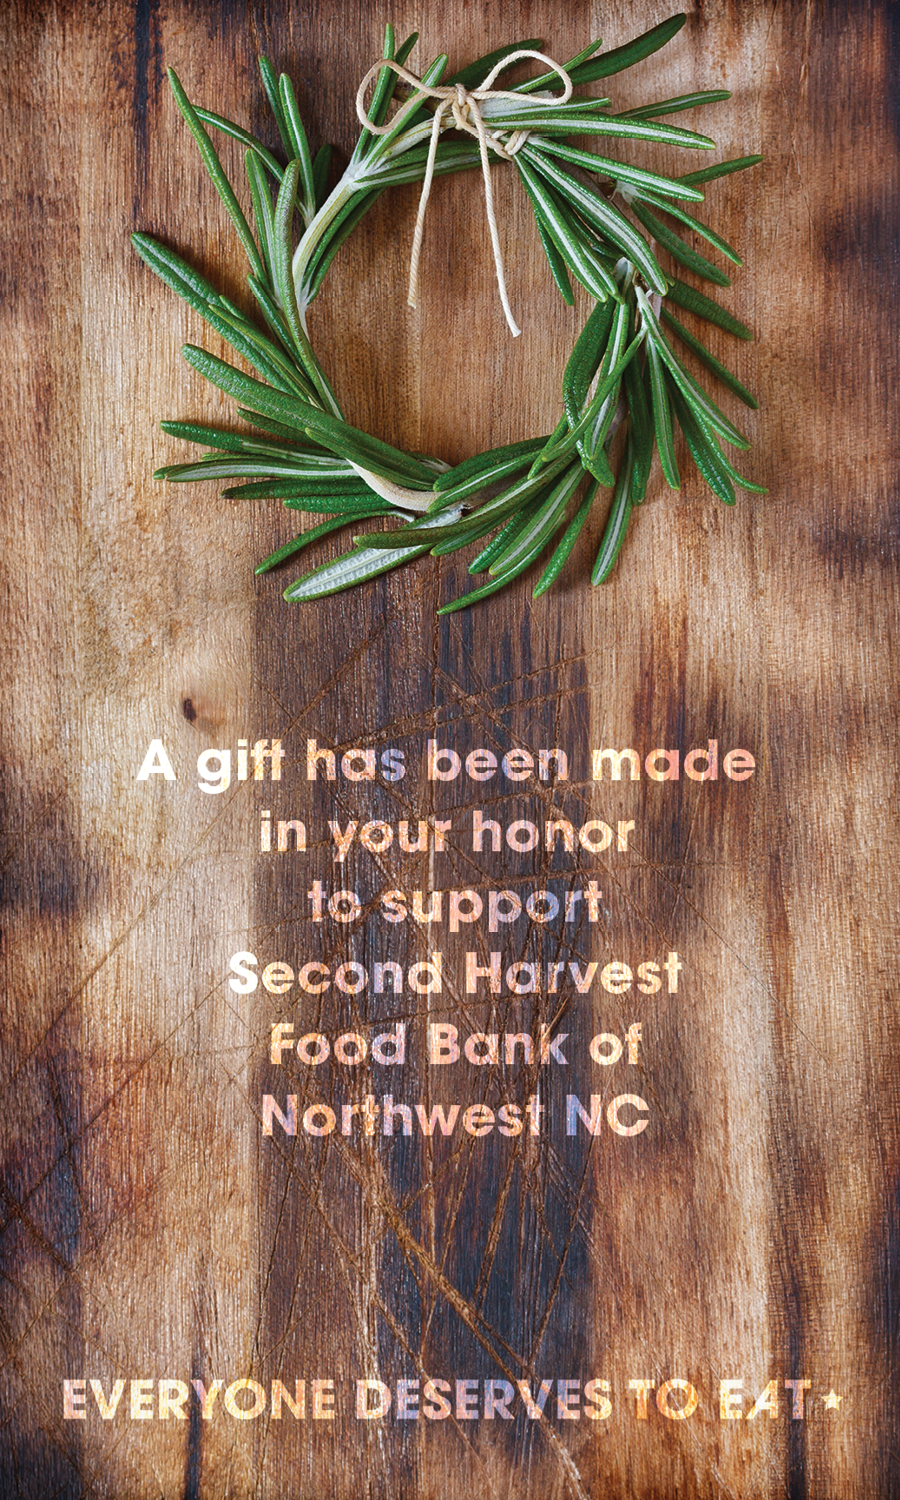 Image of Second Harvest's Holiday Card Insert with rosemary on a cutting board